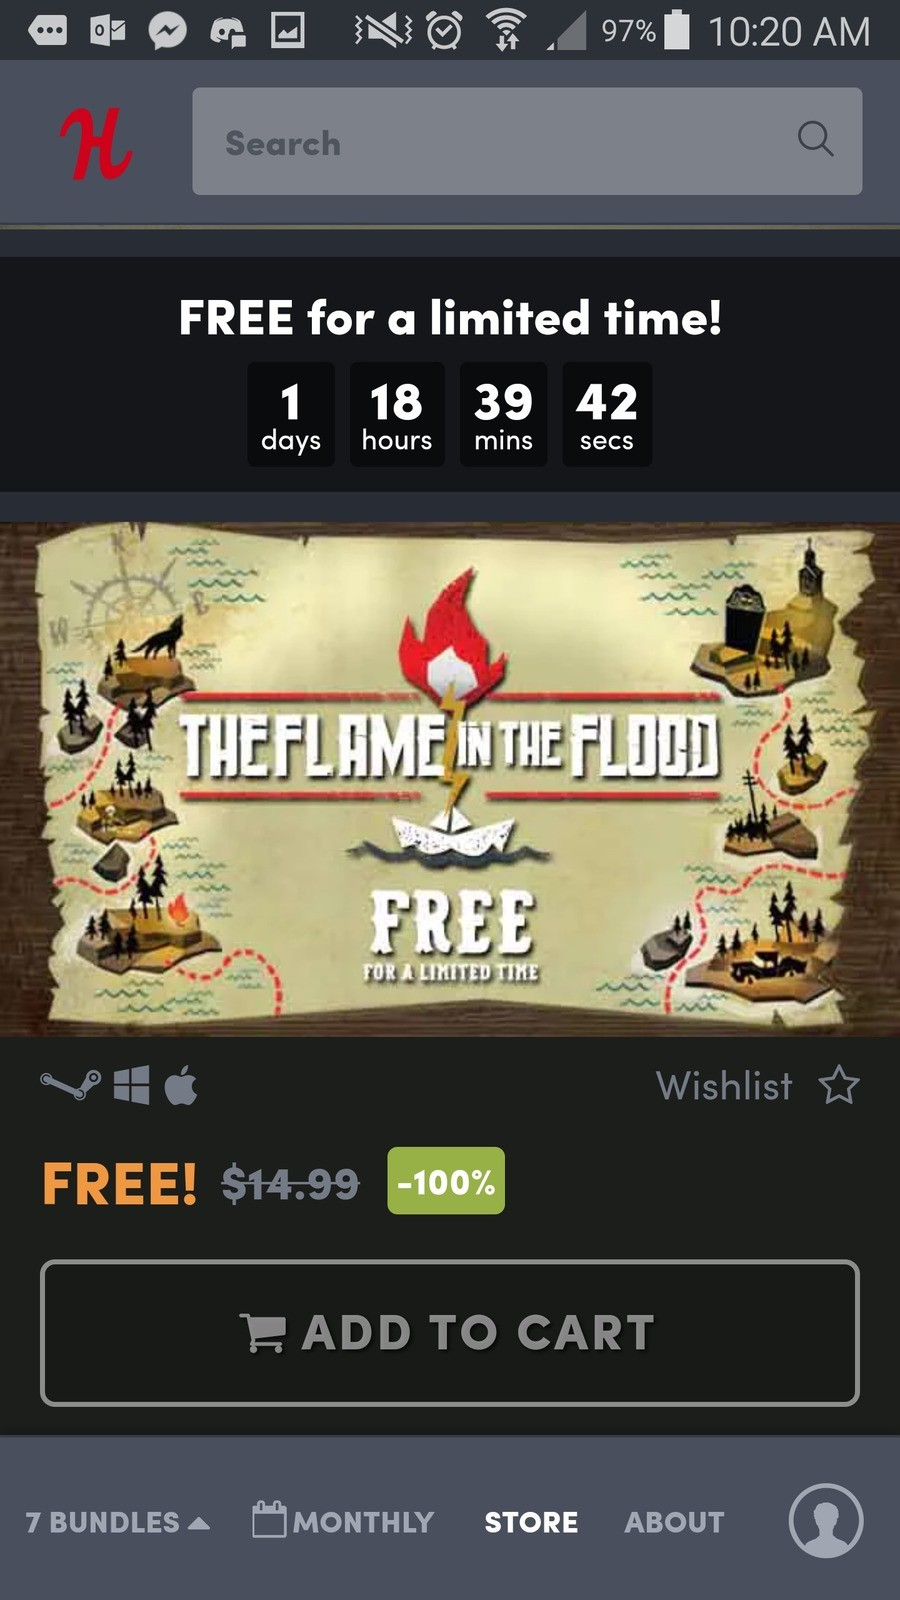 Free game - the flame in the flood. .